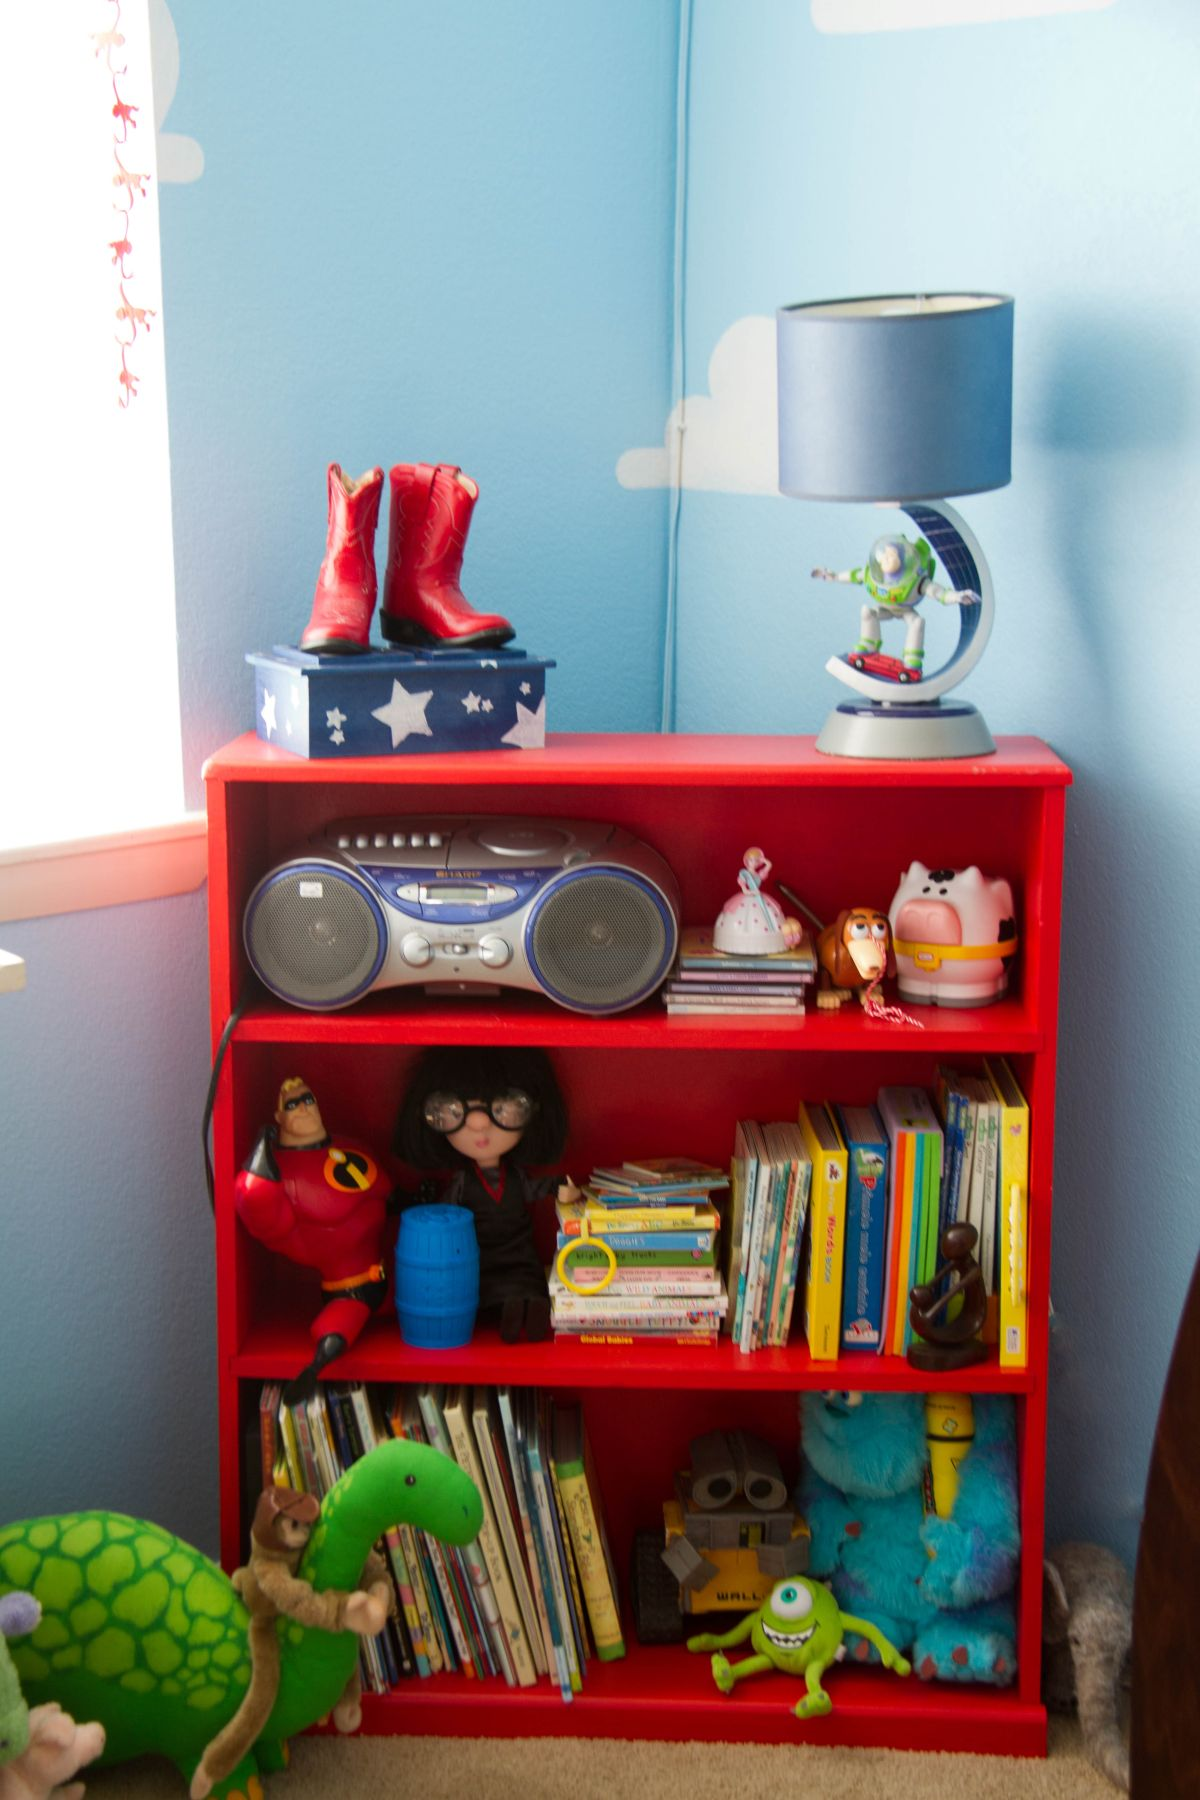 Toy StoryThemed Kids Room Design And Dcor Options